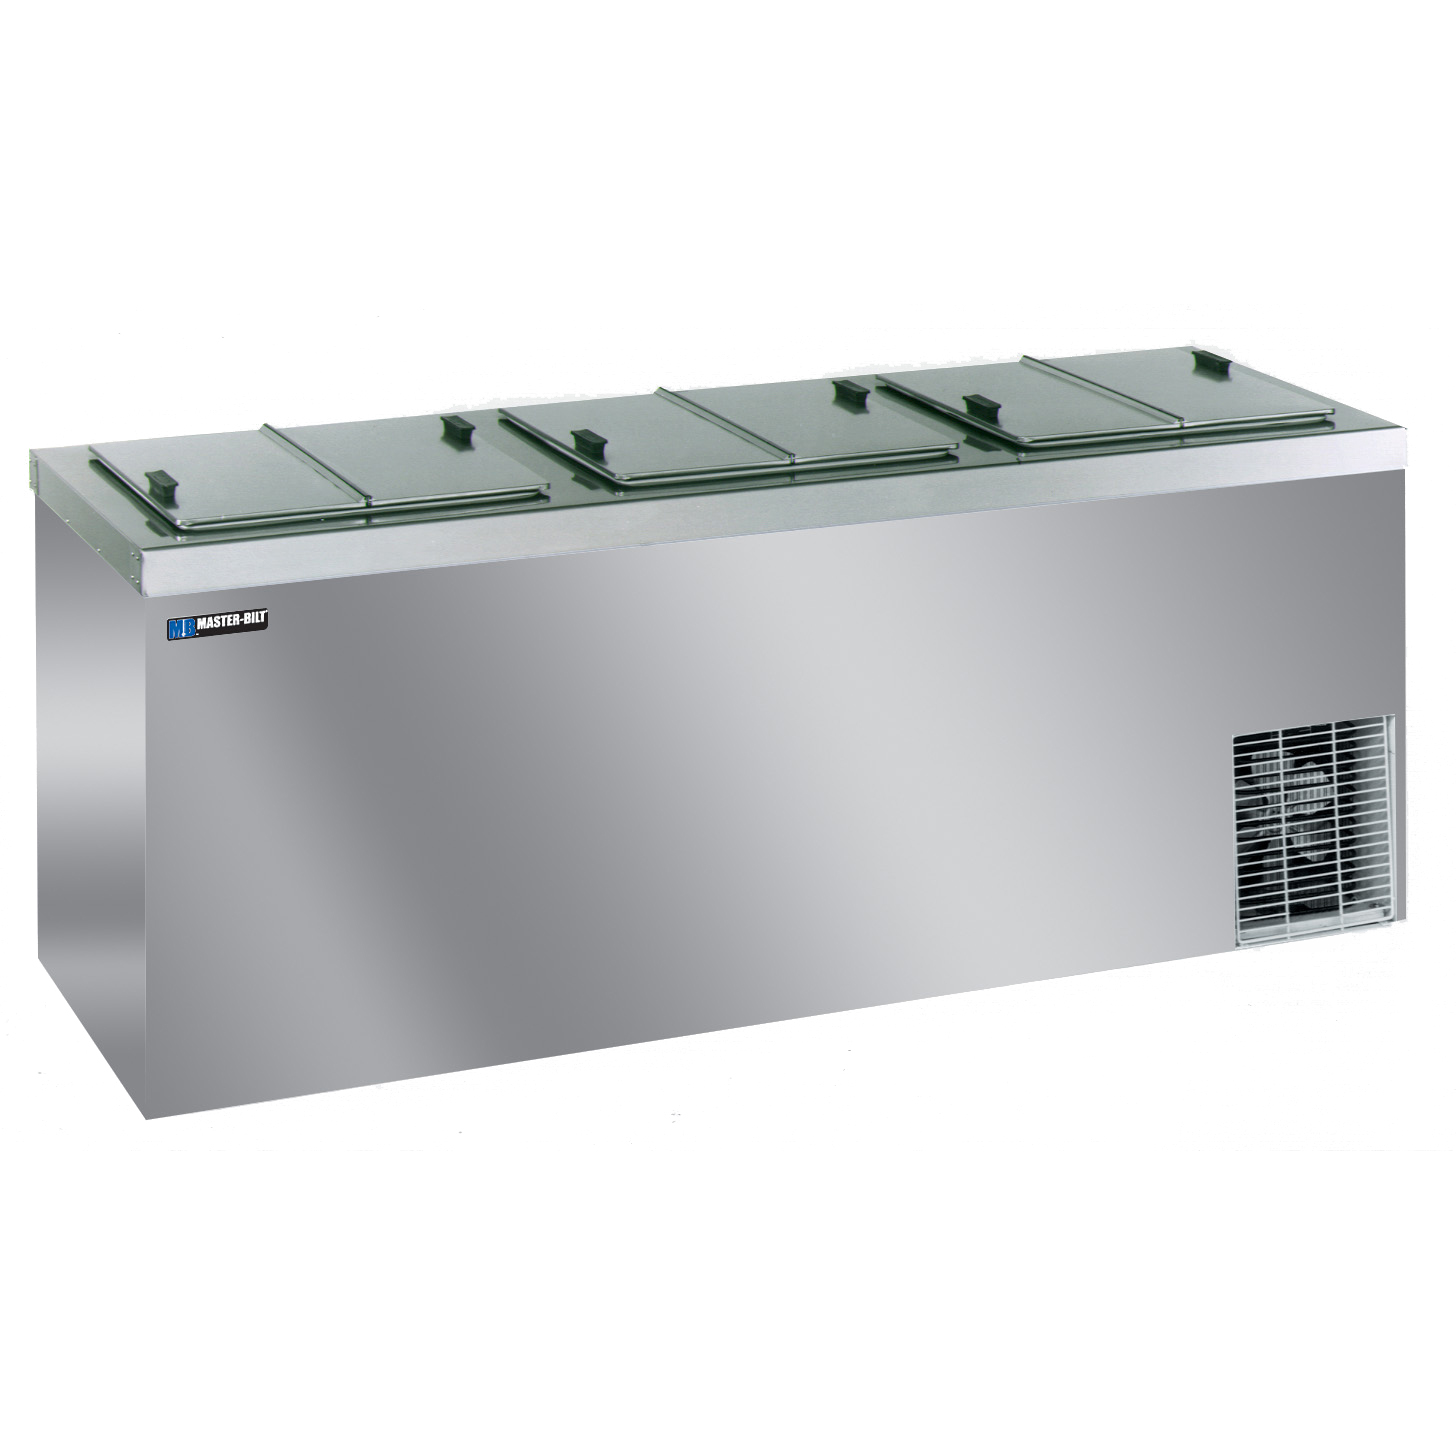 Master-Bilt Products DC-12DSE ice cream dipping cabinet